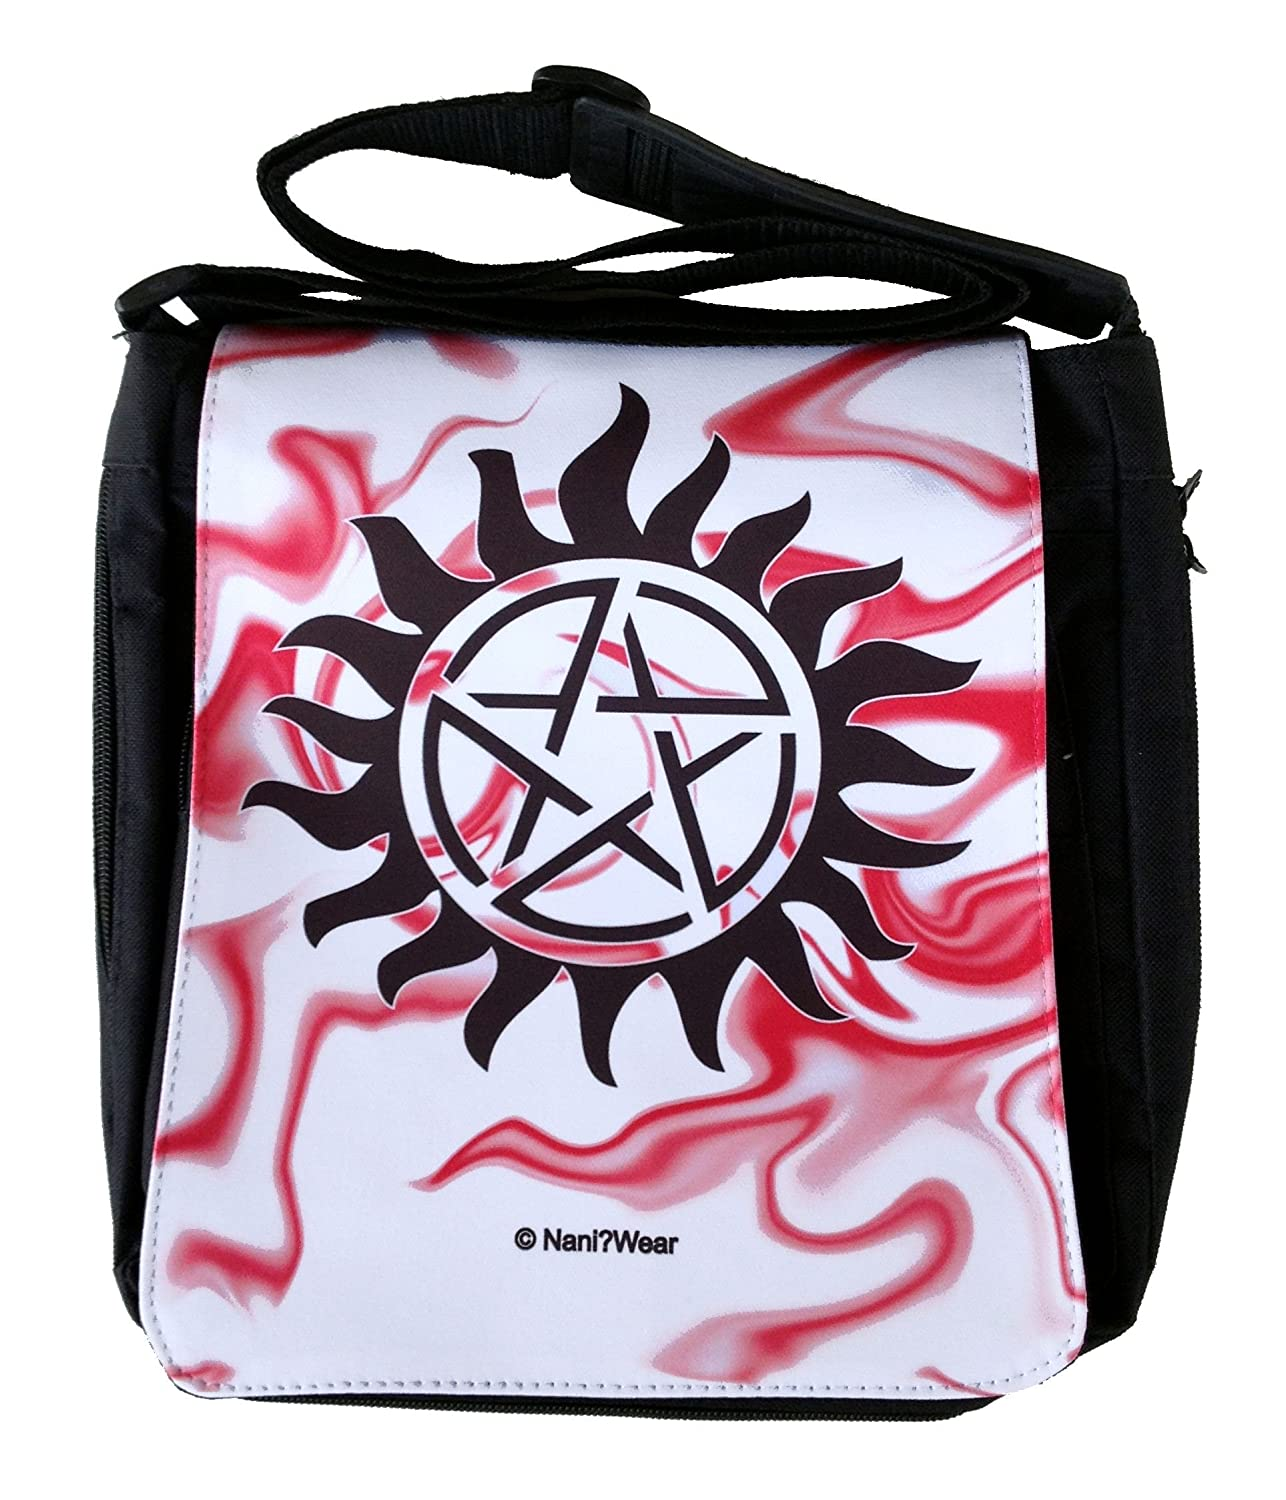 NaniWear Supernatural Anti-Possession Medium Geek Messenger Bag